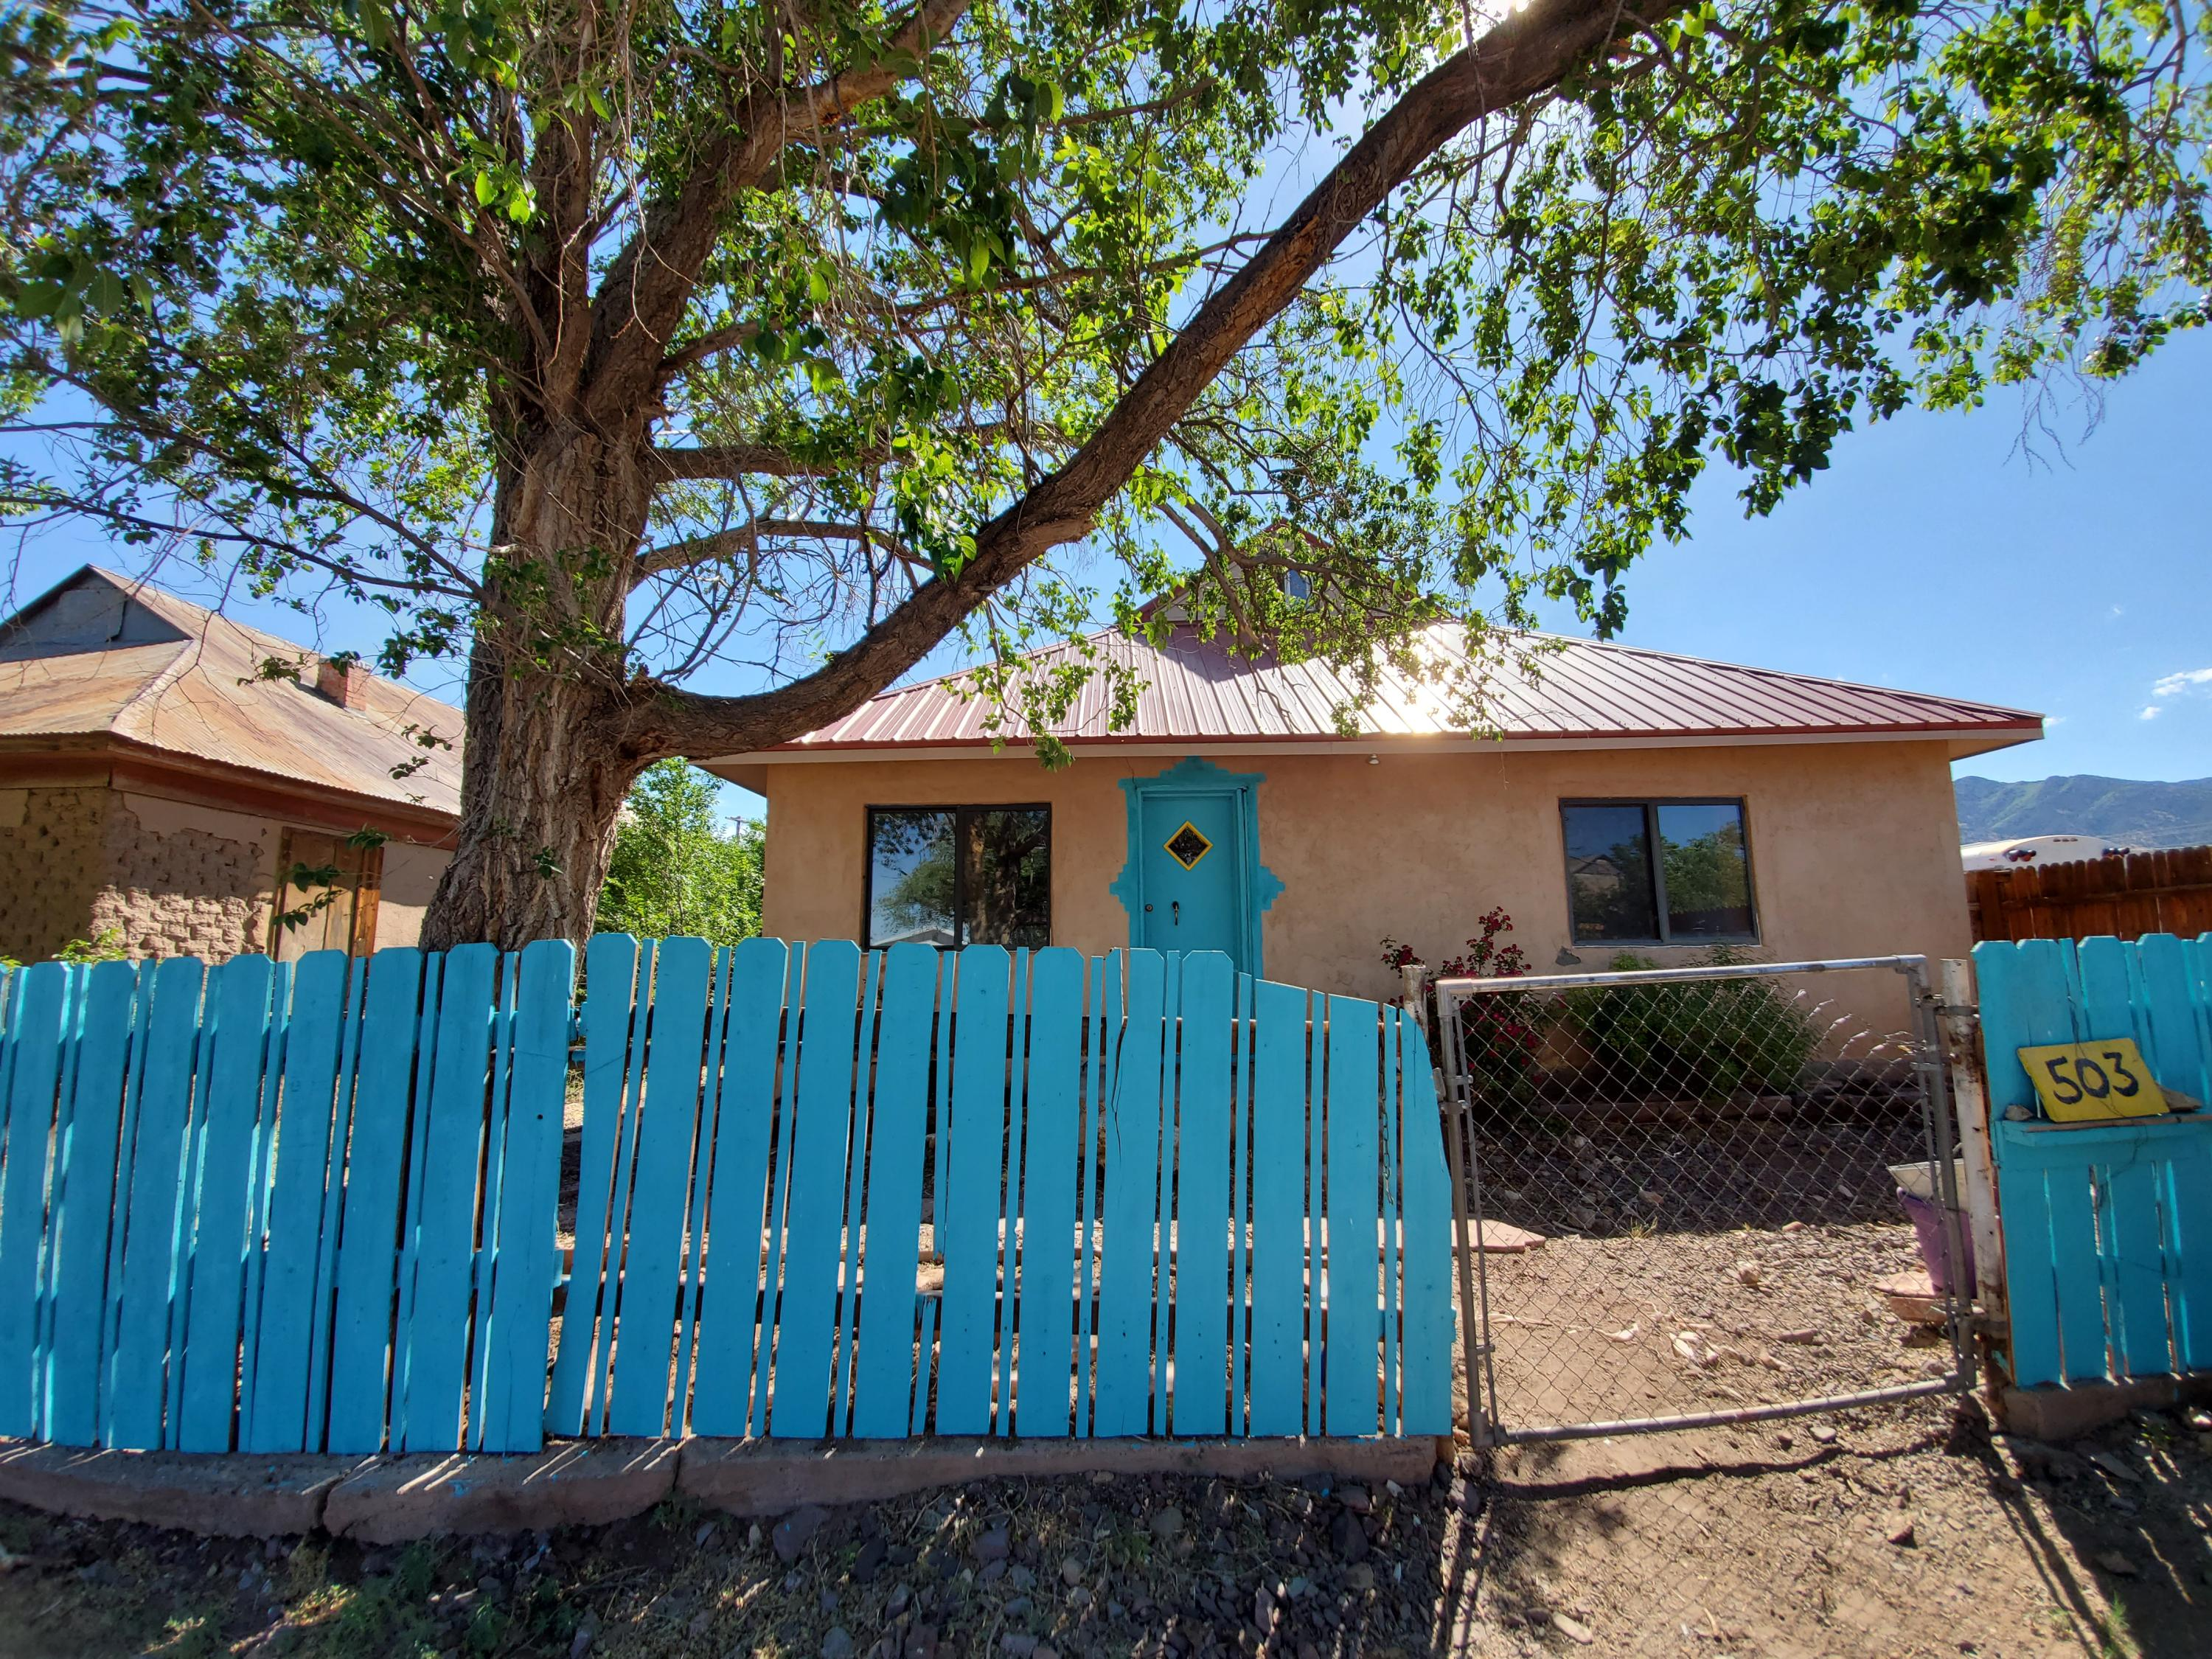 503 Elm Street, Magdalena, NM 87825 - Magdalena, NM real estate listing